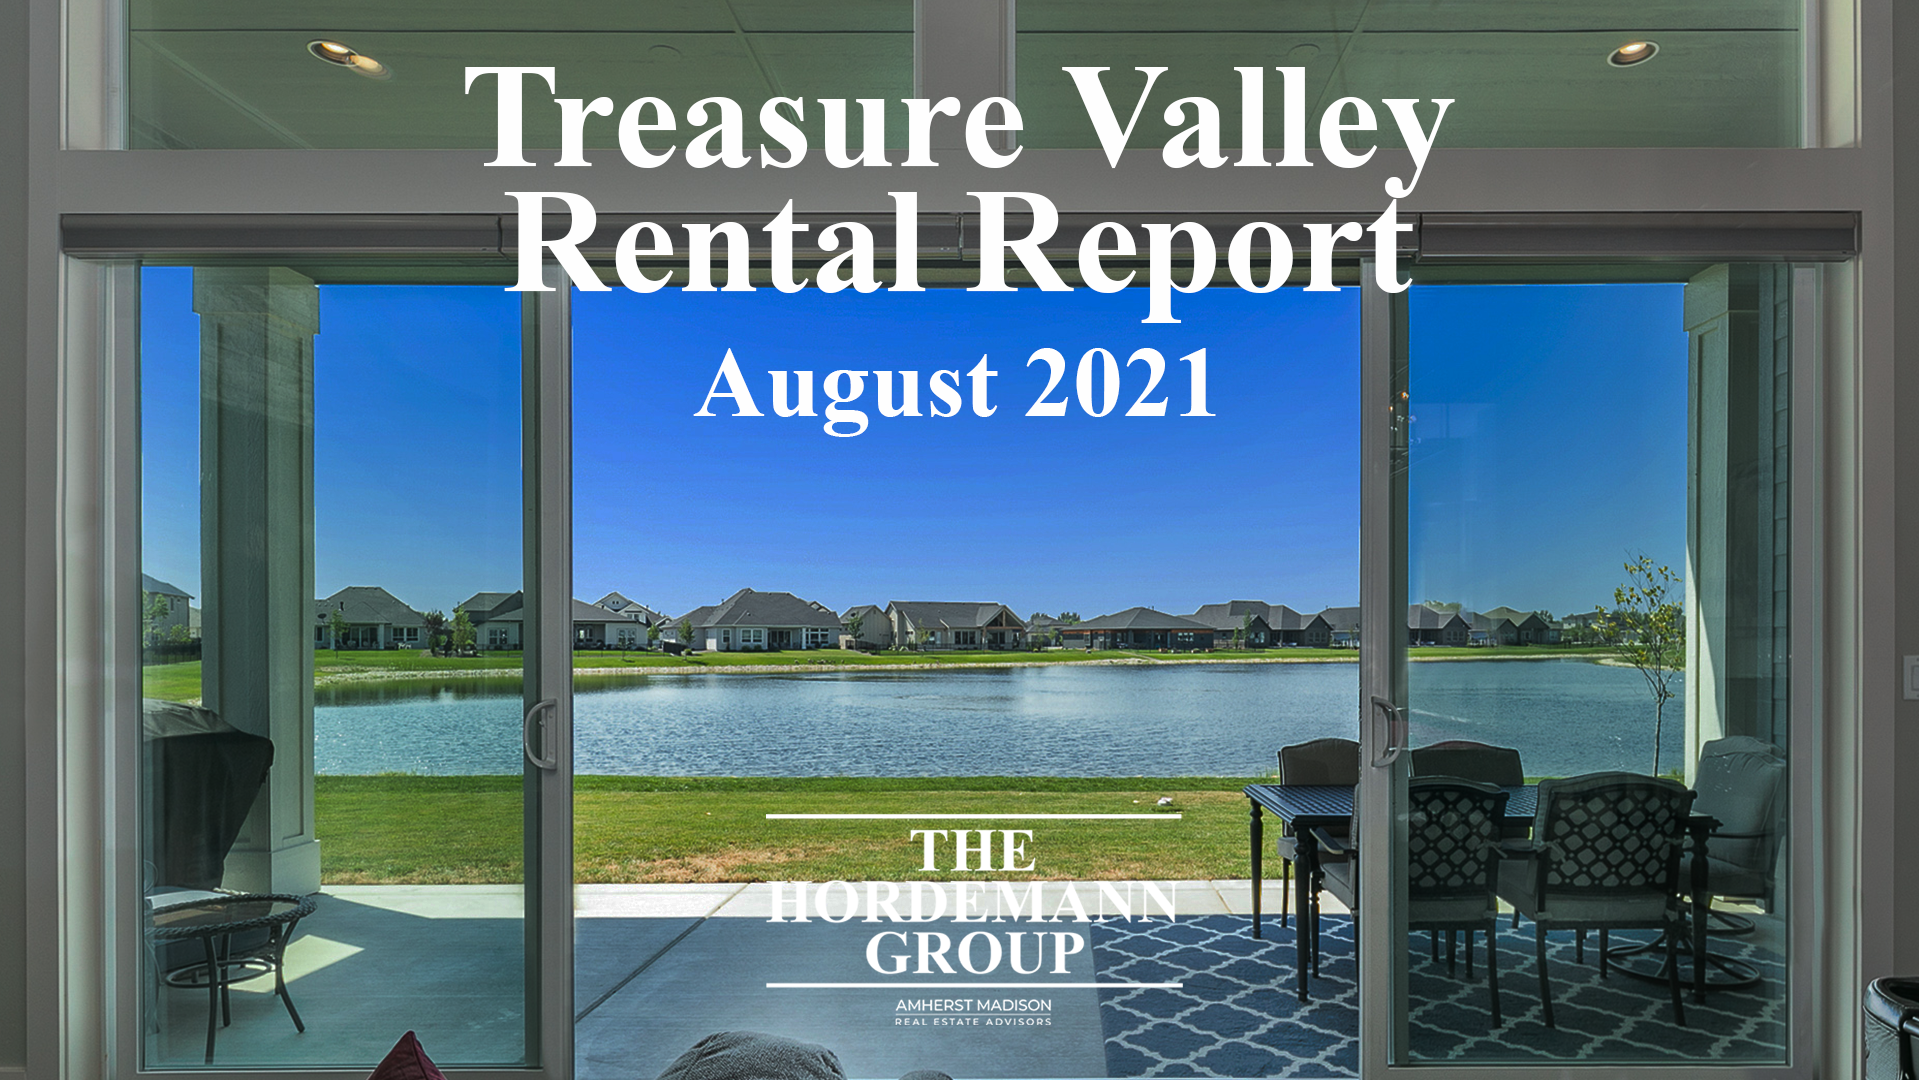 Treasure Valley Rental Report for August 2021